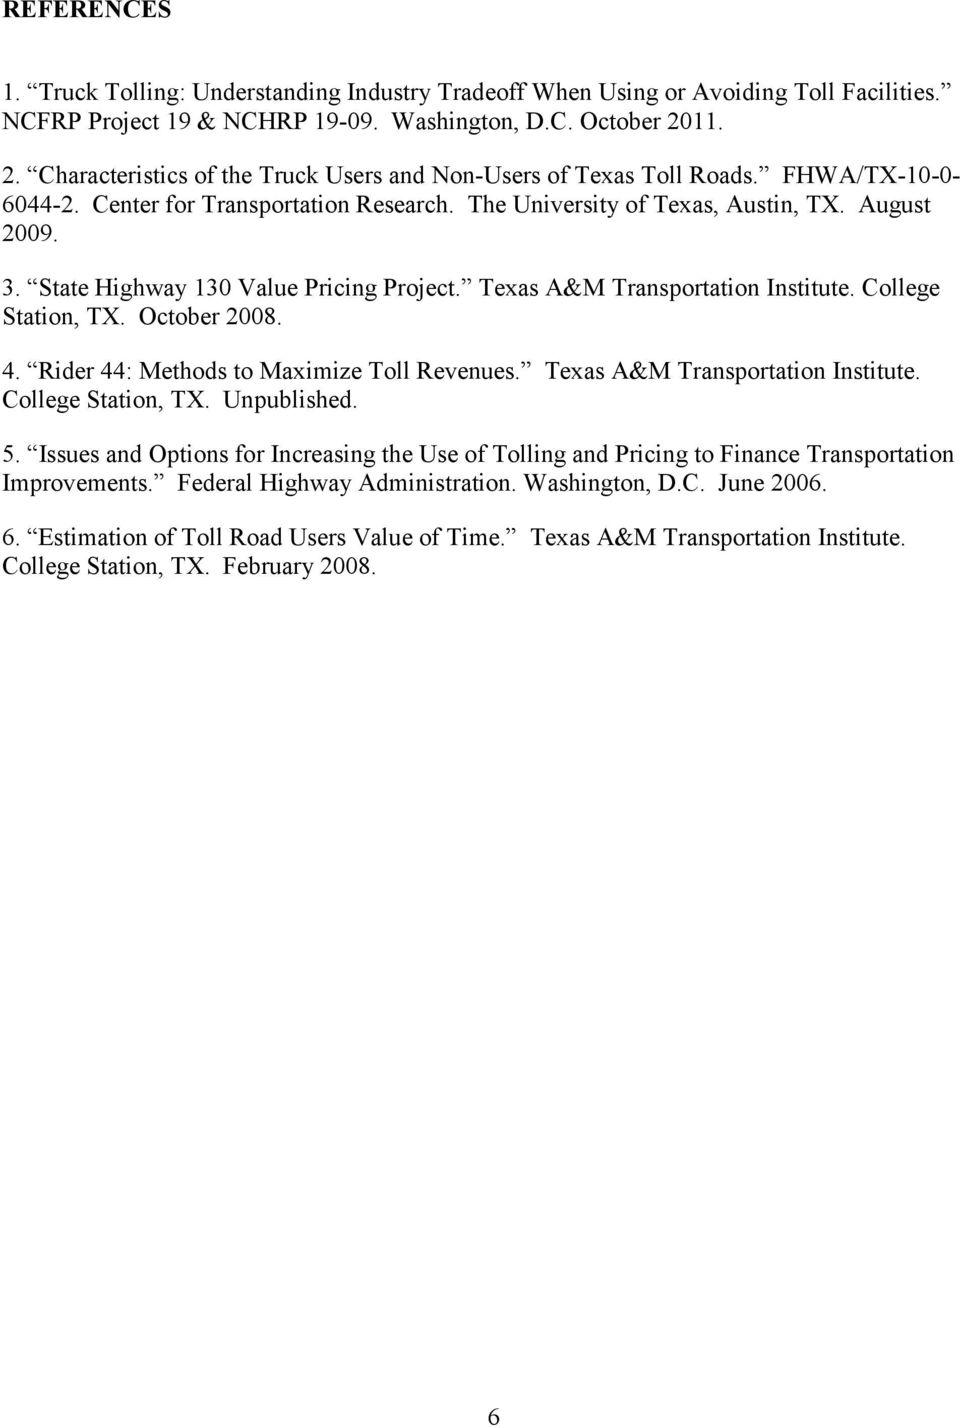 State Highway 130 Value Pricing Project. Texas A&M Transportation Institute. College Station, TX. October 2008. 4. Rider 44: Methods to Maximize Toll Revenues. Texas A&M Transportation Institute. College Station, TX. Unpublished.